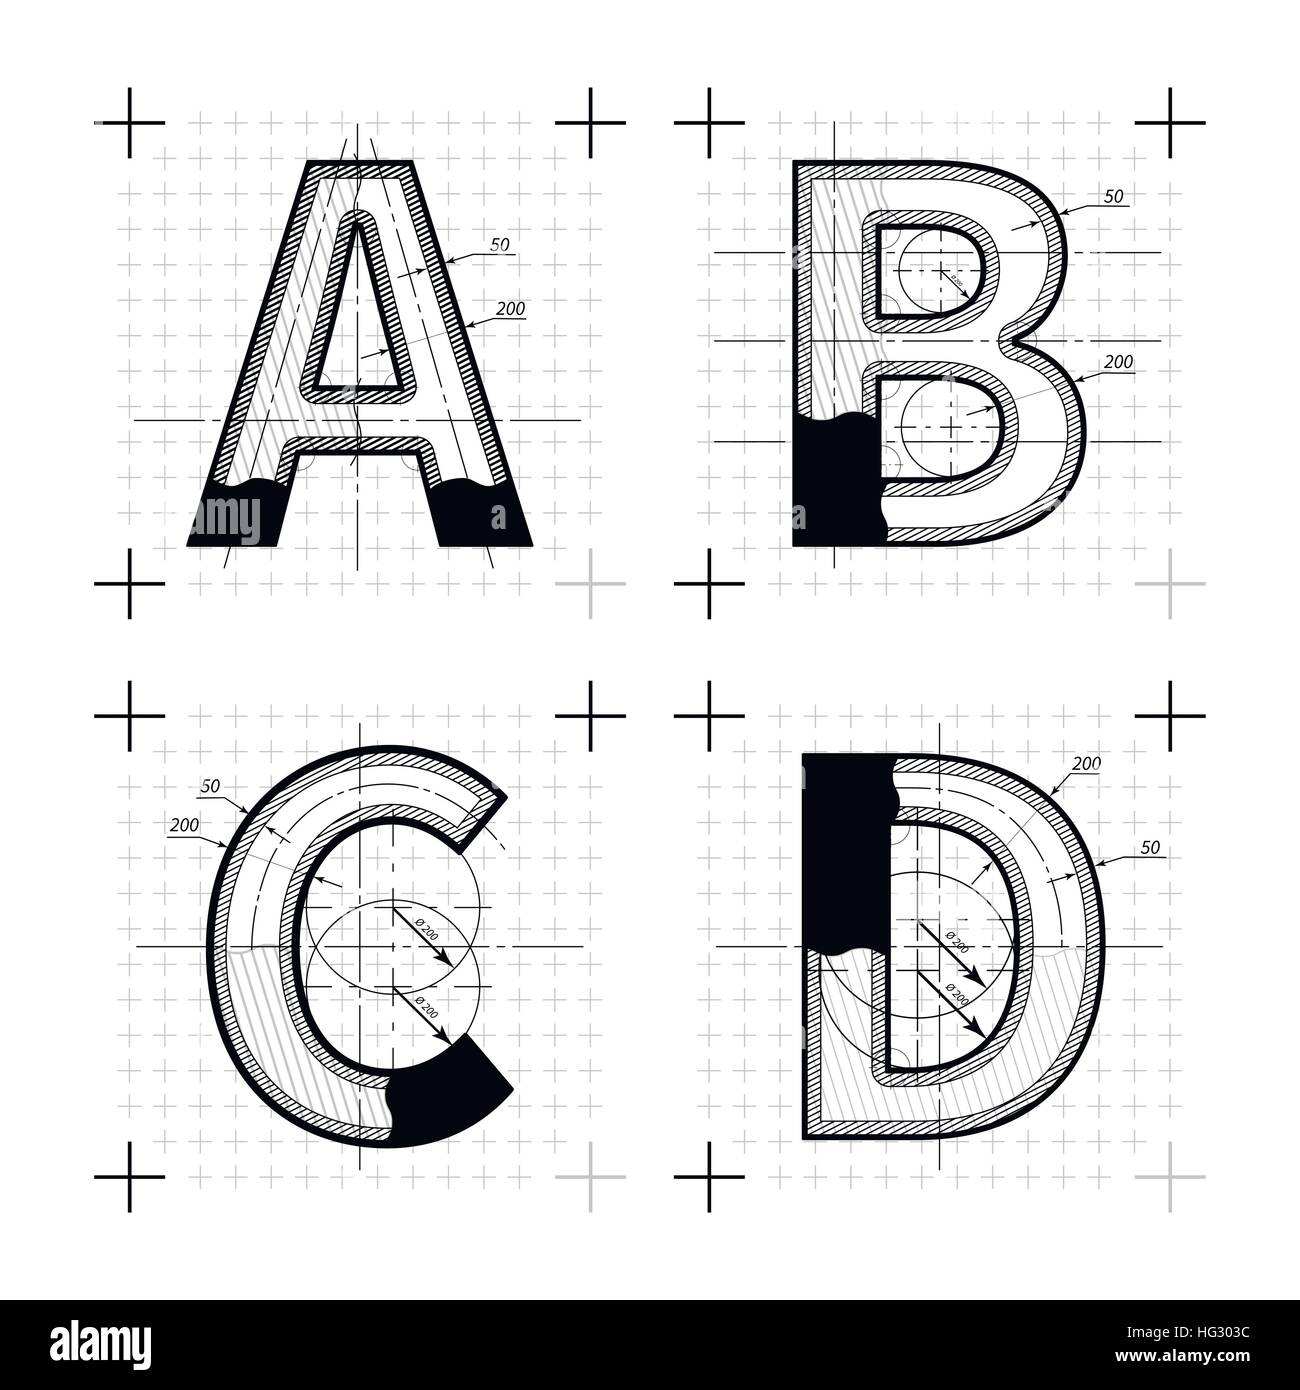 Architectural sketches of a b c d letters blueprint style font on architectural sketches of a b c d letters blueprint style font on white malvernweather Gallery